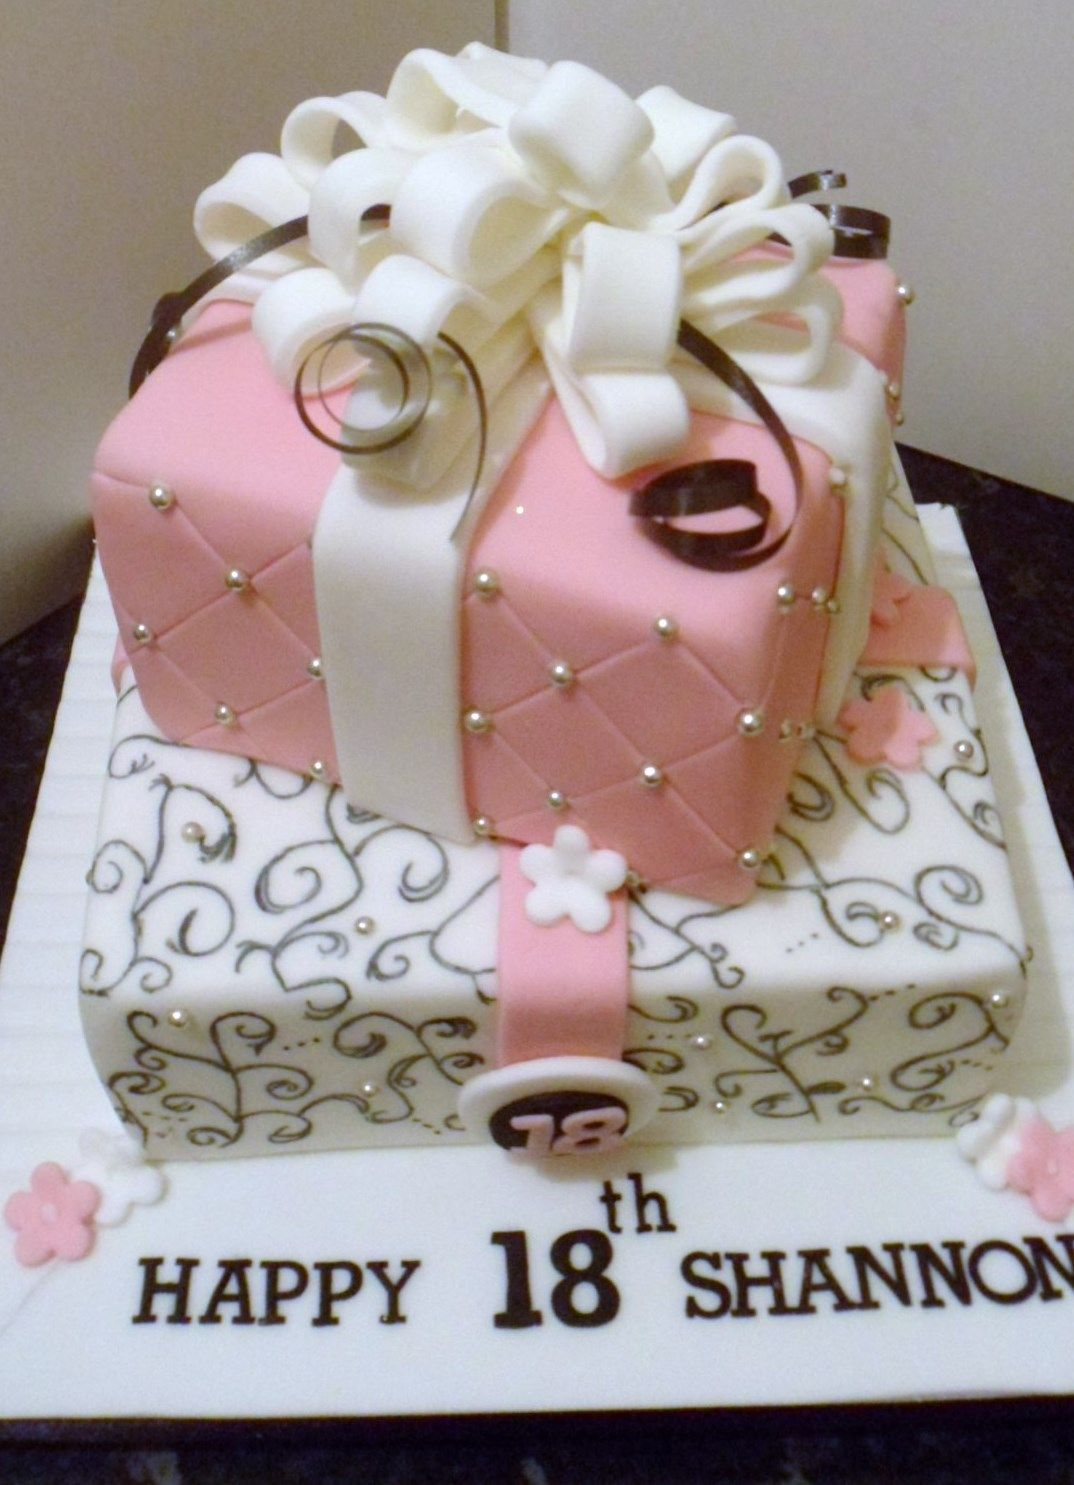 2 Tier Cake Suitable For Several Occasions All Design